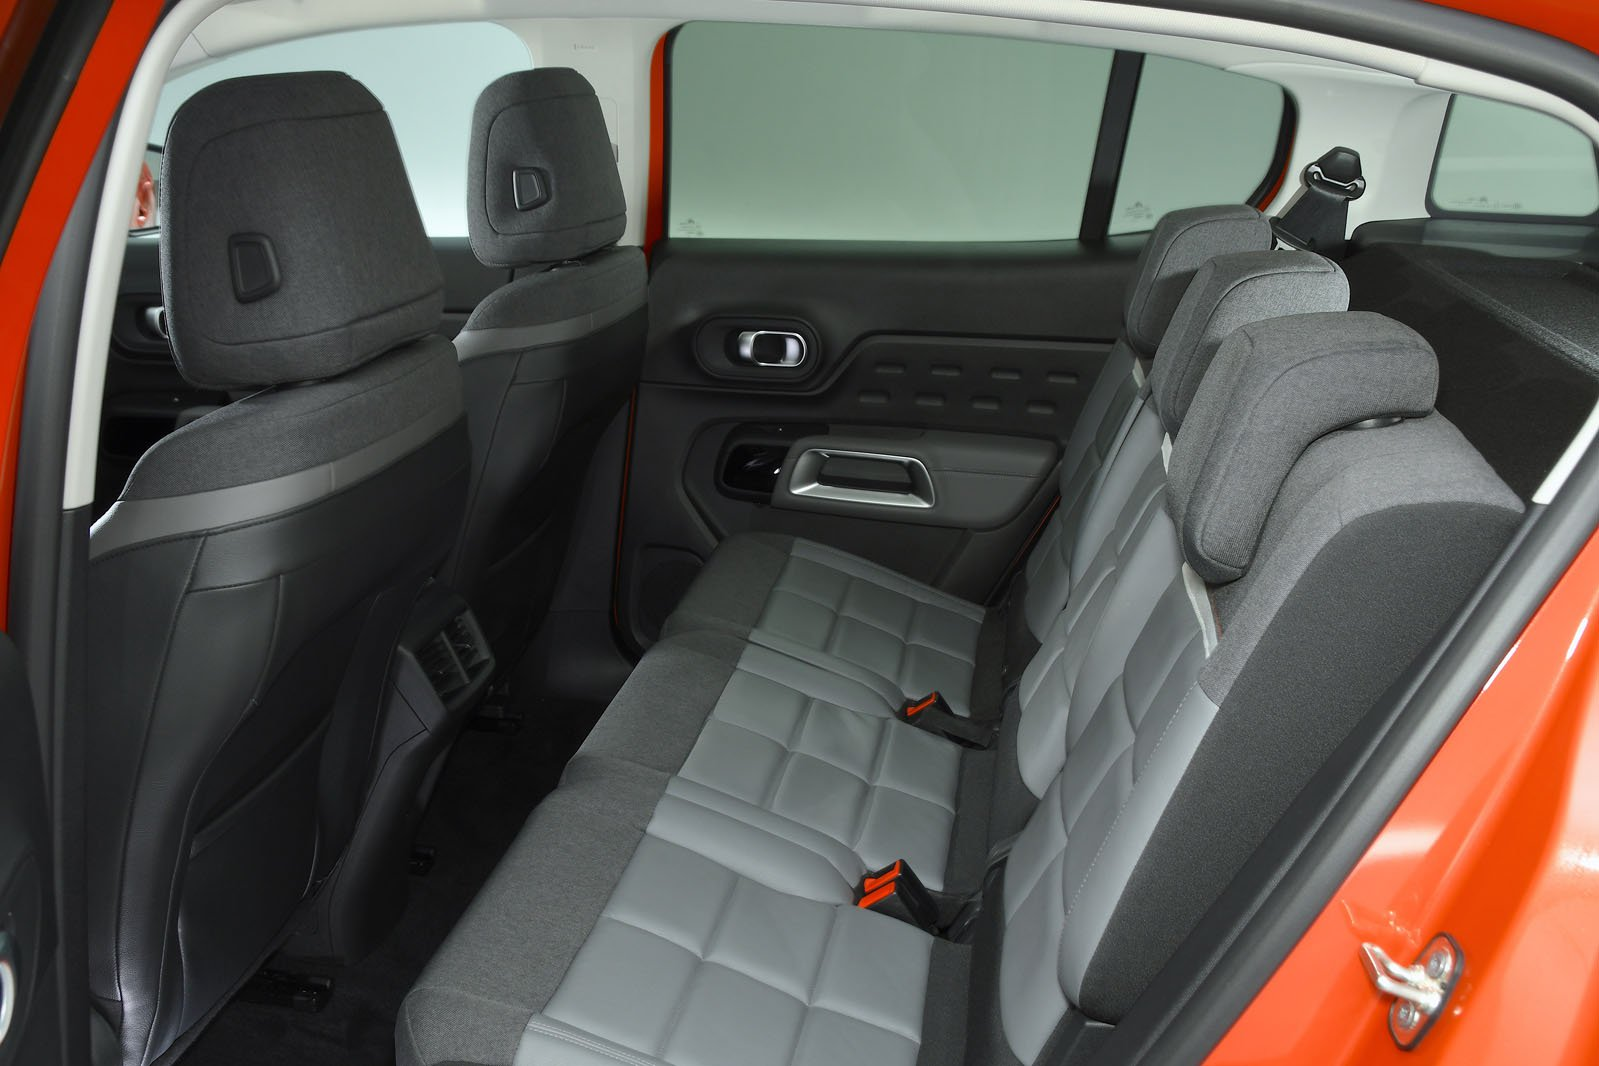 Citroen C5 Aircross rear seat